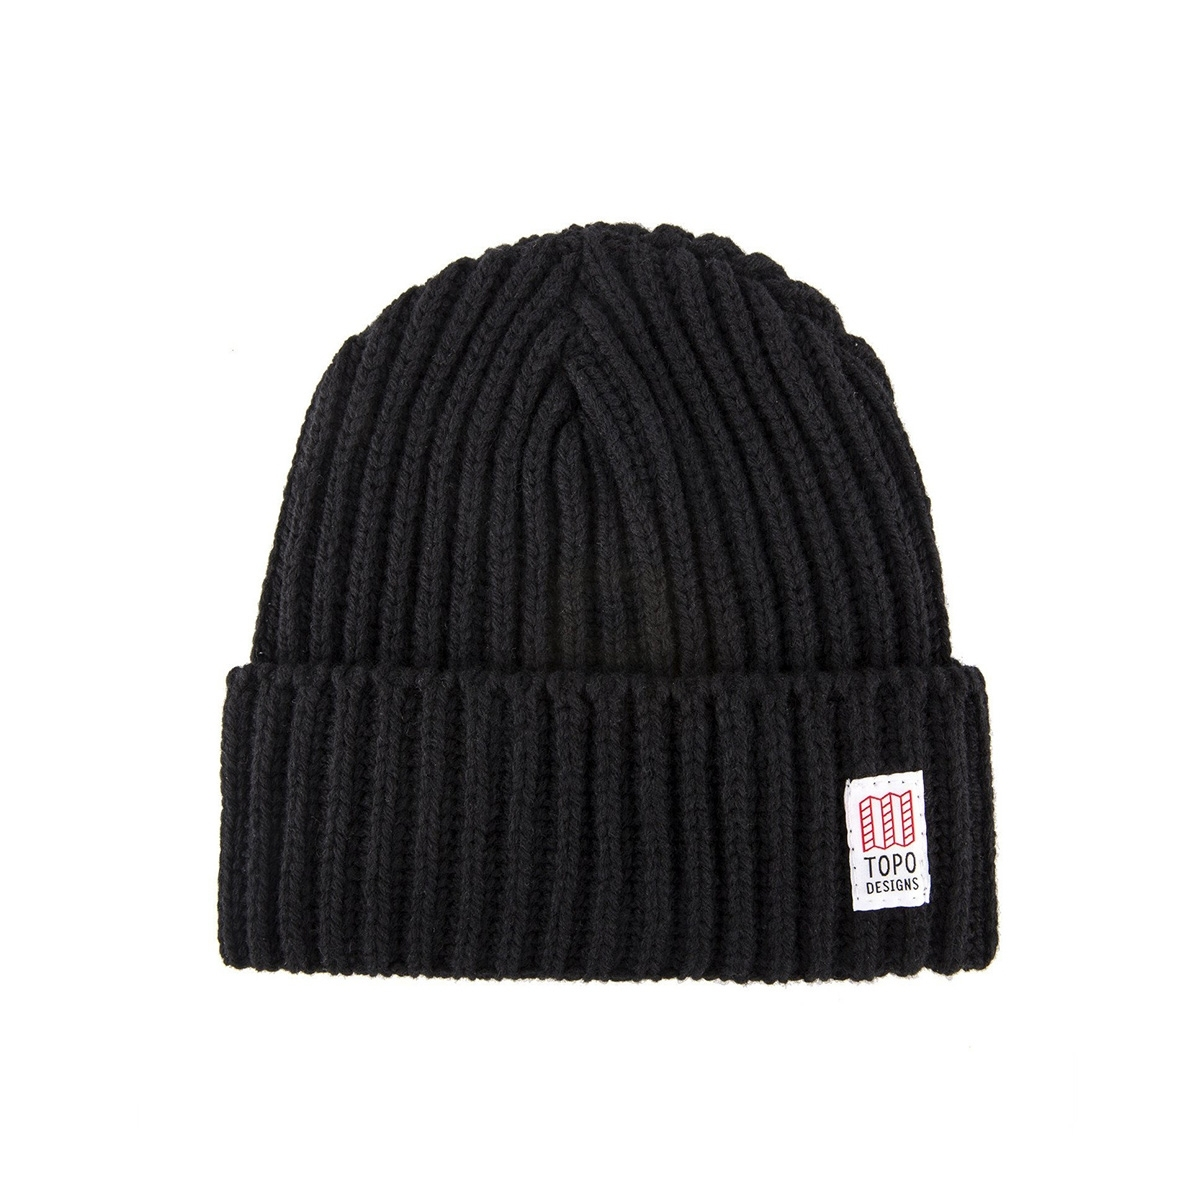 Topo Designs Wool Beanie Black